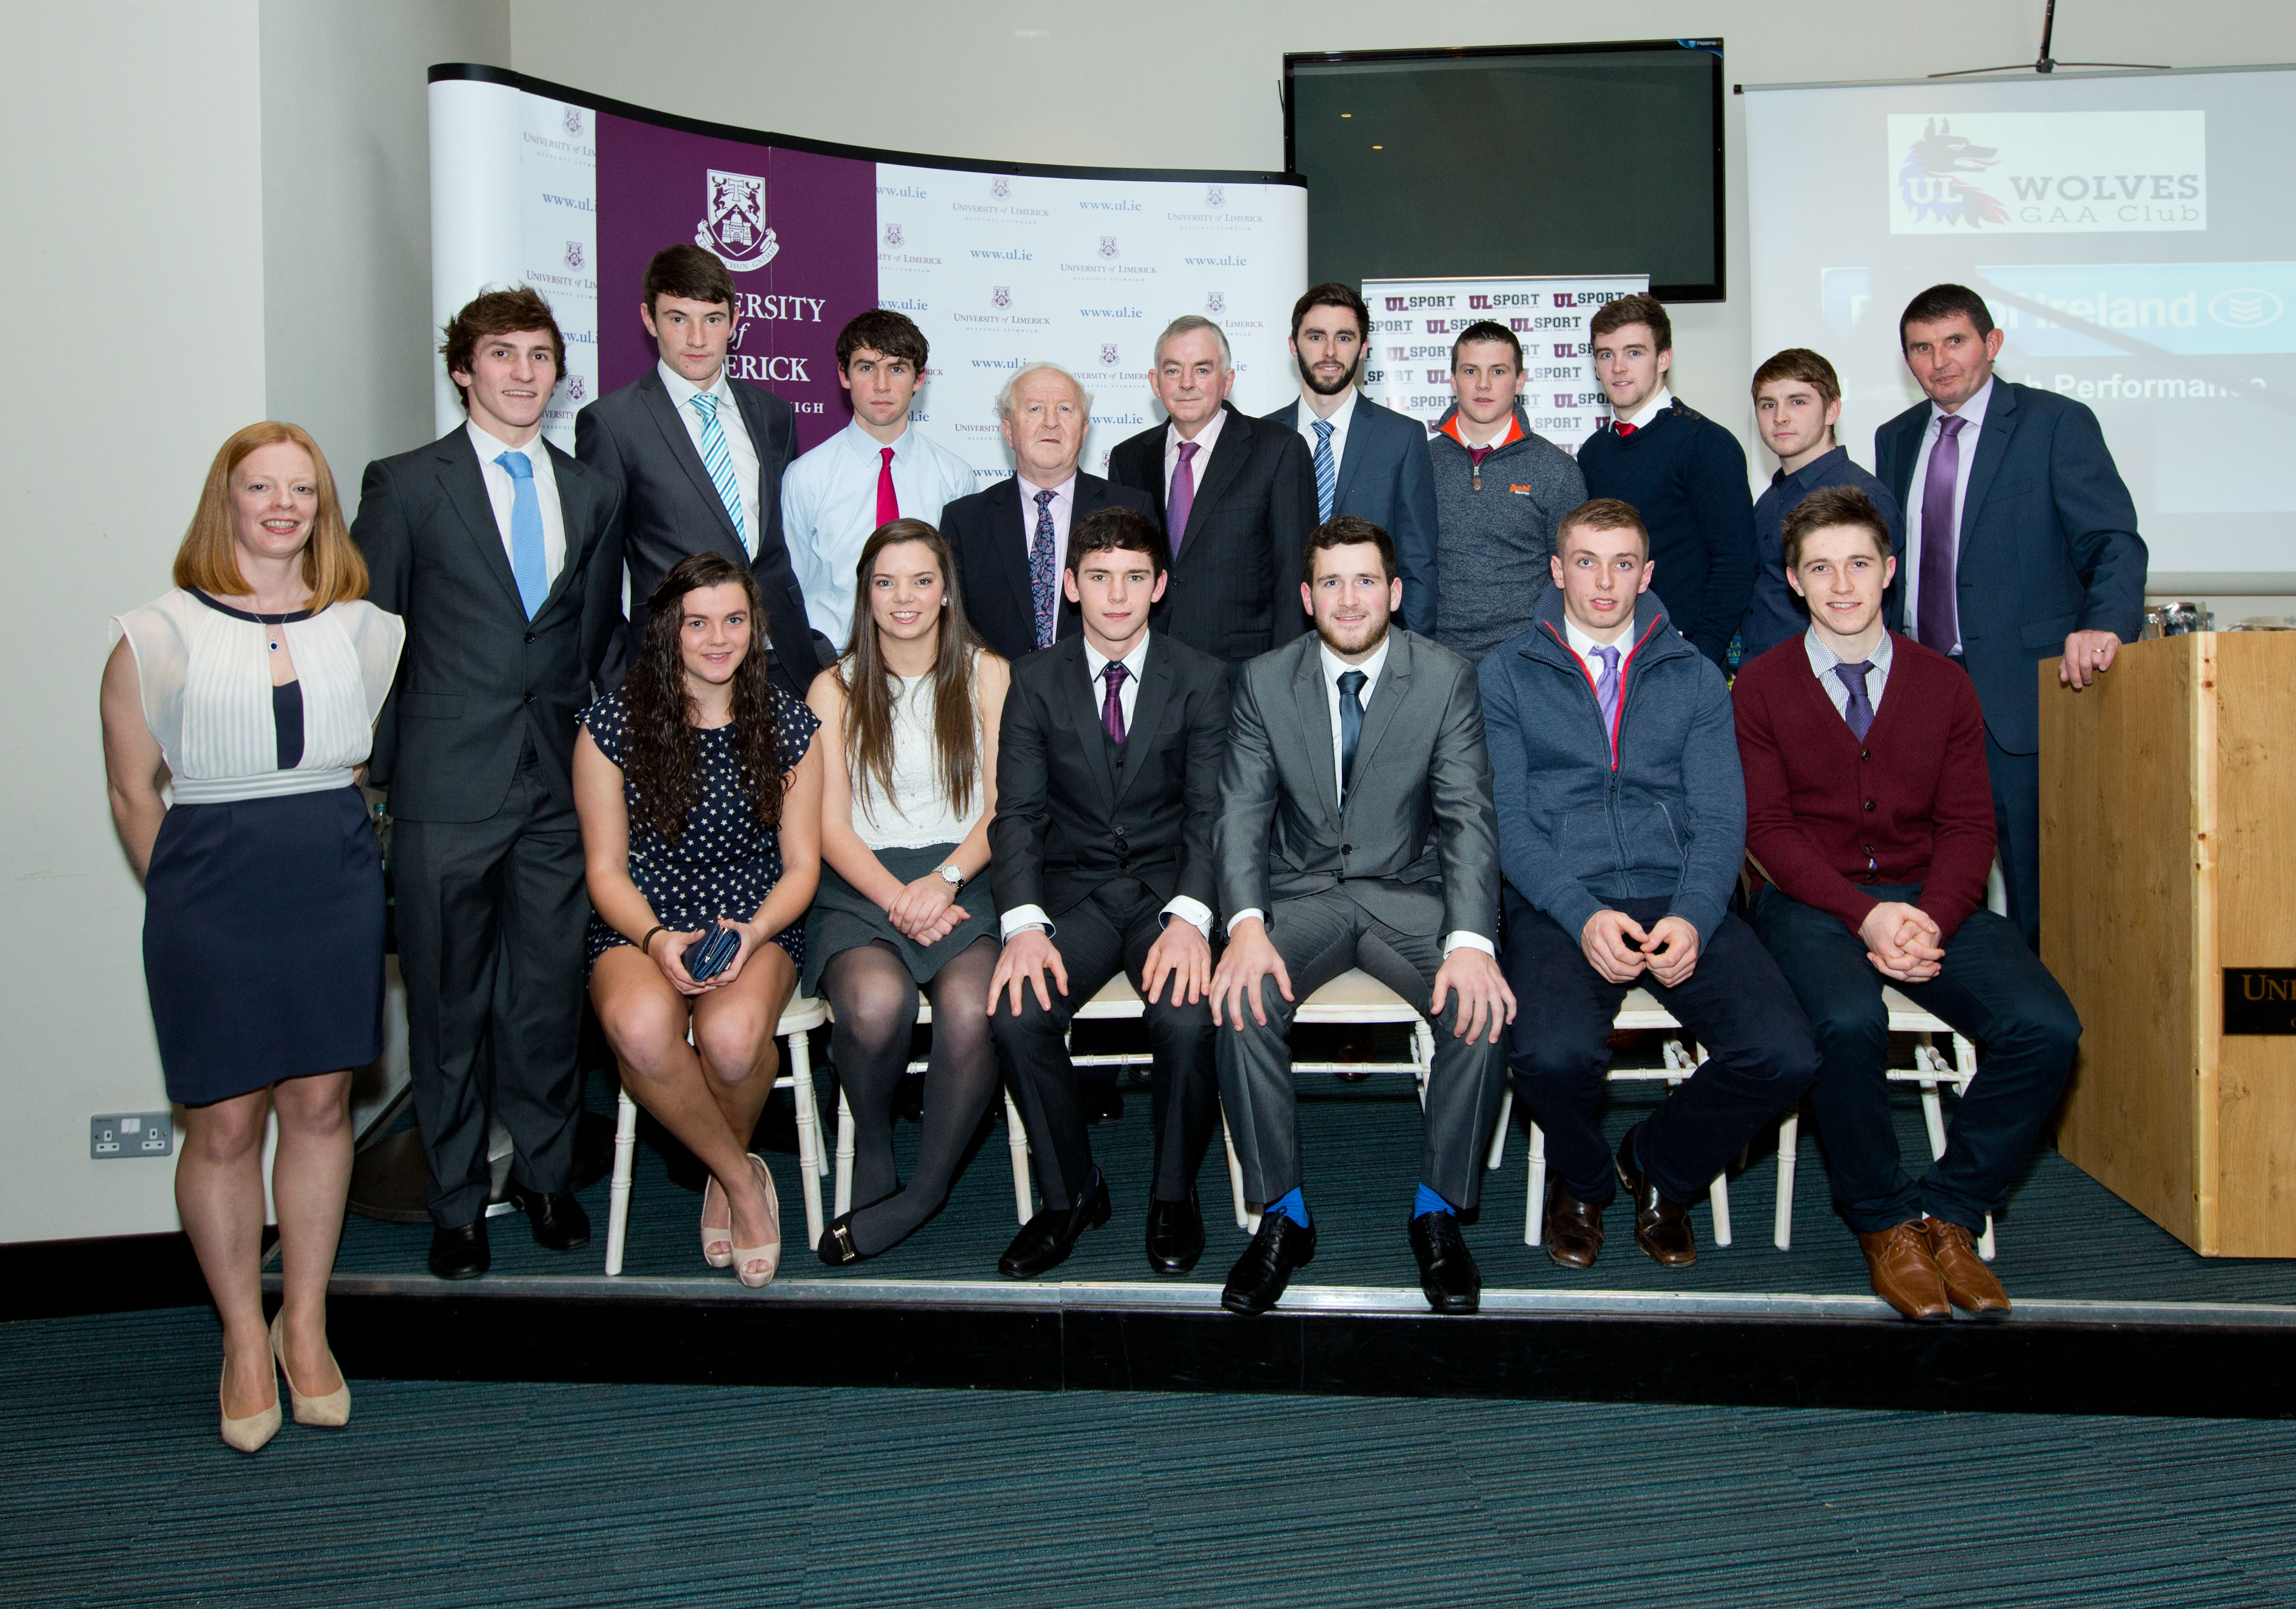 Robert Frost, Munster Council and Prof. Don Barry, President University of Limerick pictured with from front left: Deirdre Murphy, UL, Laura McMahon, Newmarket, Niamh O'Dea, Banner, Cian O'Dea, Kilfenora, Michael Duffy, Kilfenora, David Mc Inerney, Tulla and Colm Crehan, O'Callaghans Mills. Back row from left: Ian Galvin, Clonlara, David Fitzgerald, Adam McGuane, Kilmaley, Keith Hogan, Clooney/Quin, Jack Malone, Tony Kelly, Ballyea, Michael O'Neill, Kilmaley and John Lenihan at the first UL GAA, Bank of Ireland High Performance Scholarships at the University of Limerick.